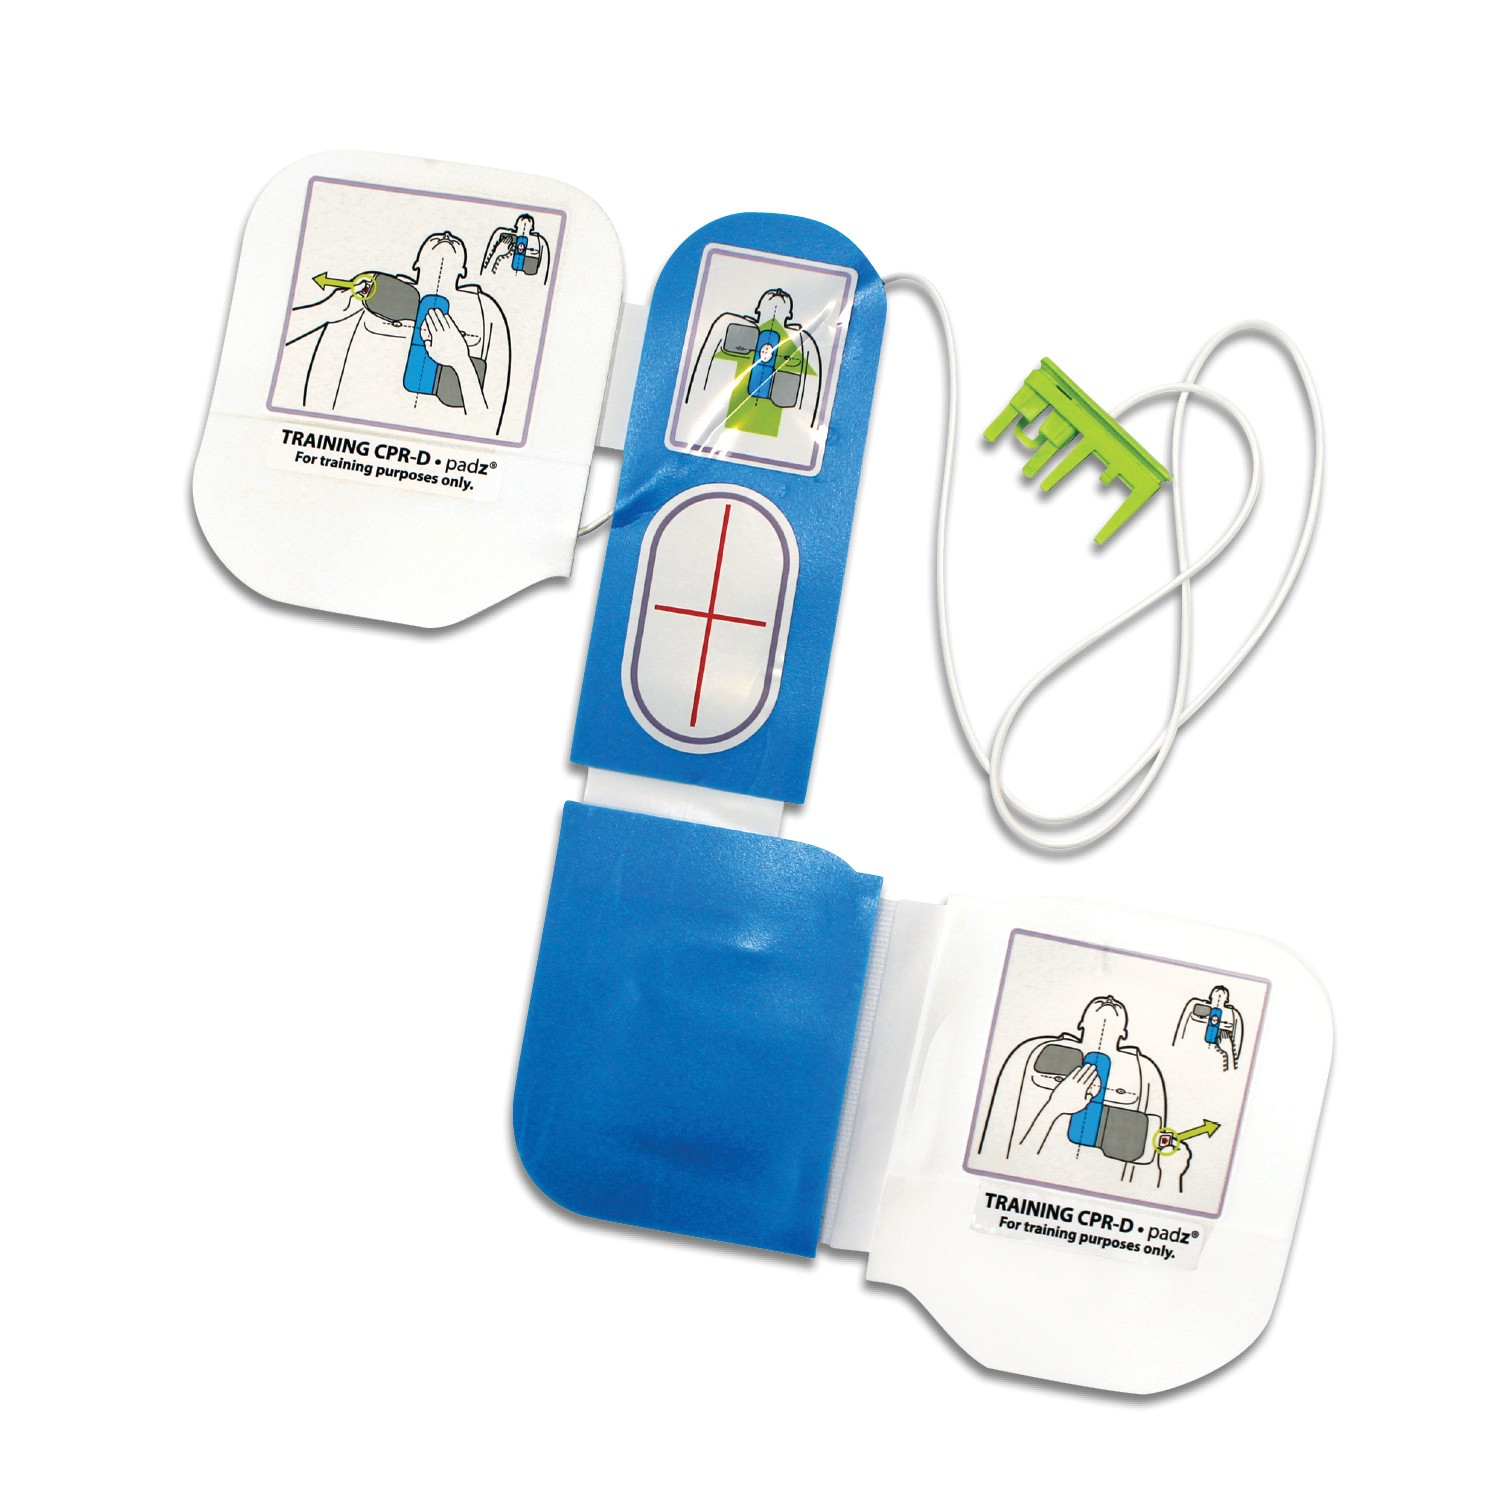 Zoll Defibrillator AED Plus & Pro Replacement CPRD-Pad Electrodes | Medical Supermarket